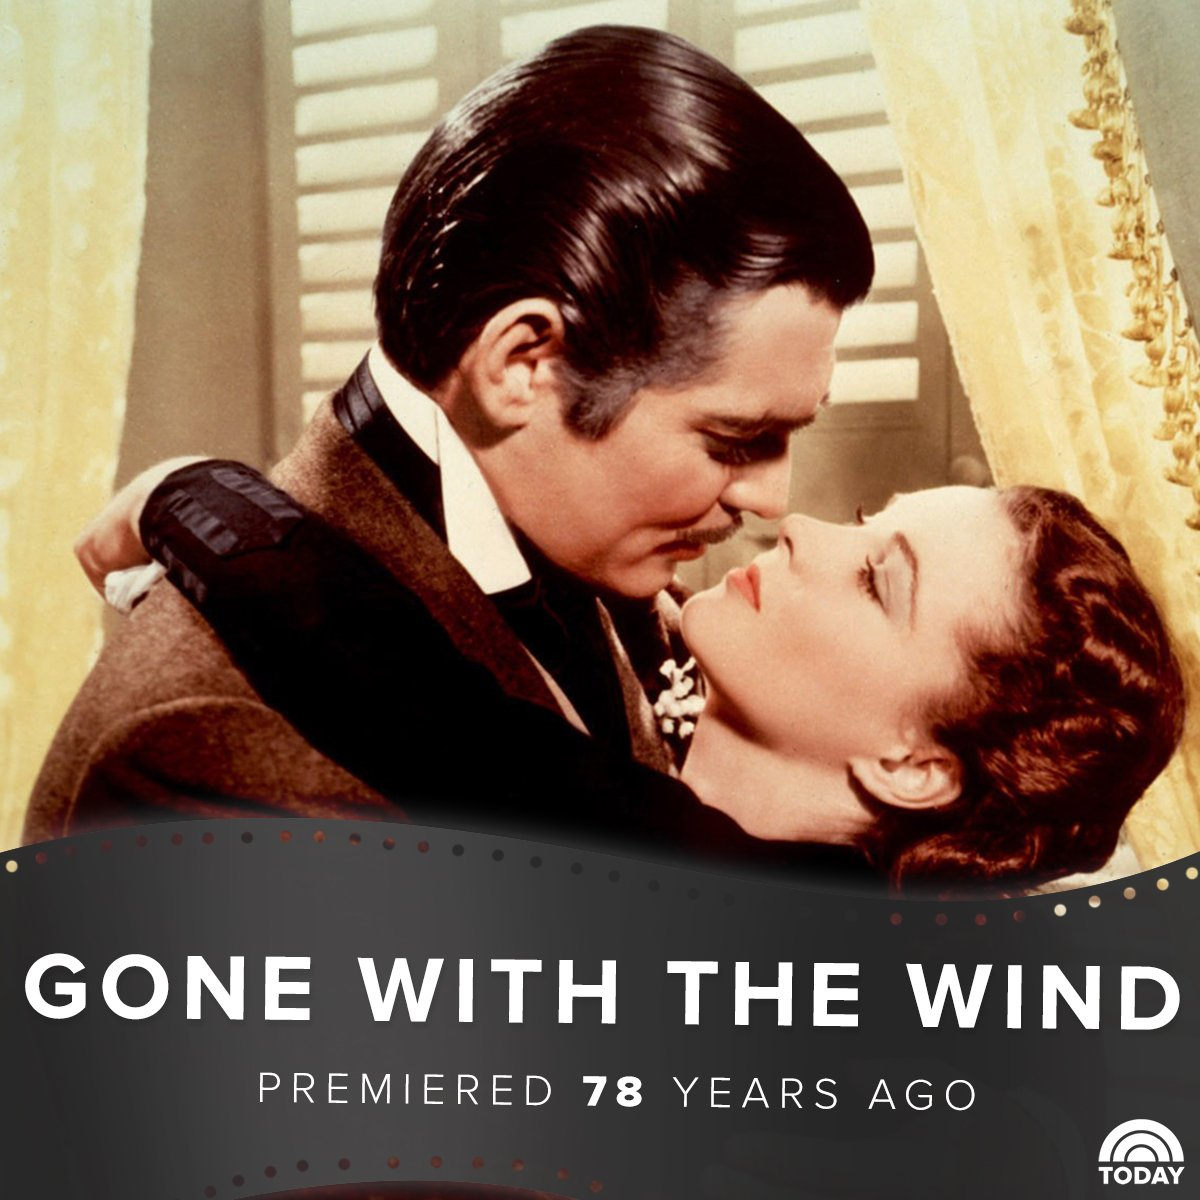 RT @TODAYshow: Frankly, we give a damn. It's Gone with the Wind's 78th anniversary! https://t.co/kk48Snn3tW